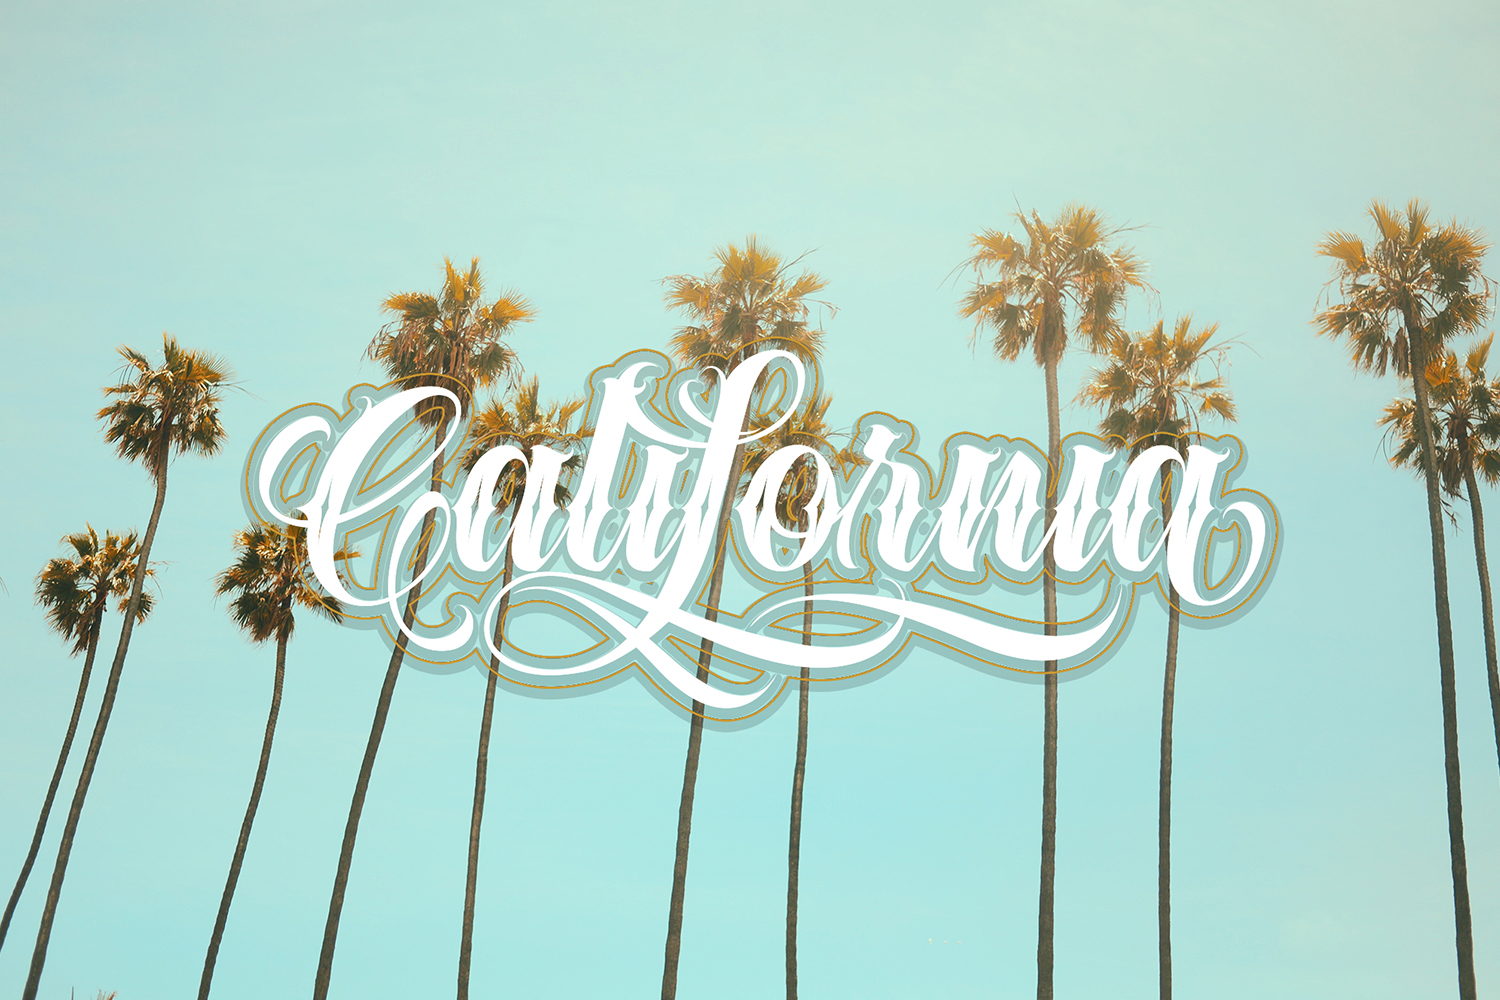 Dayles Script Fonts example image 6